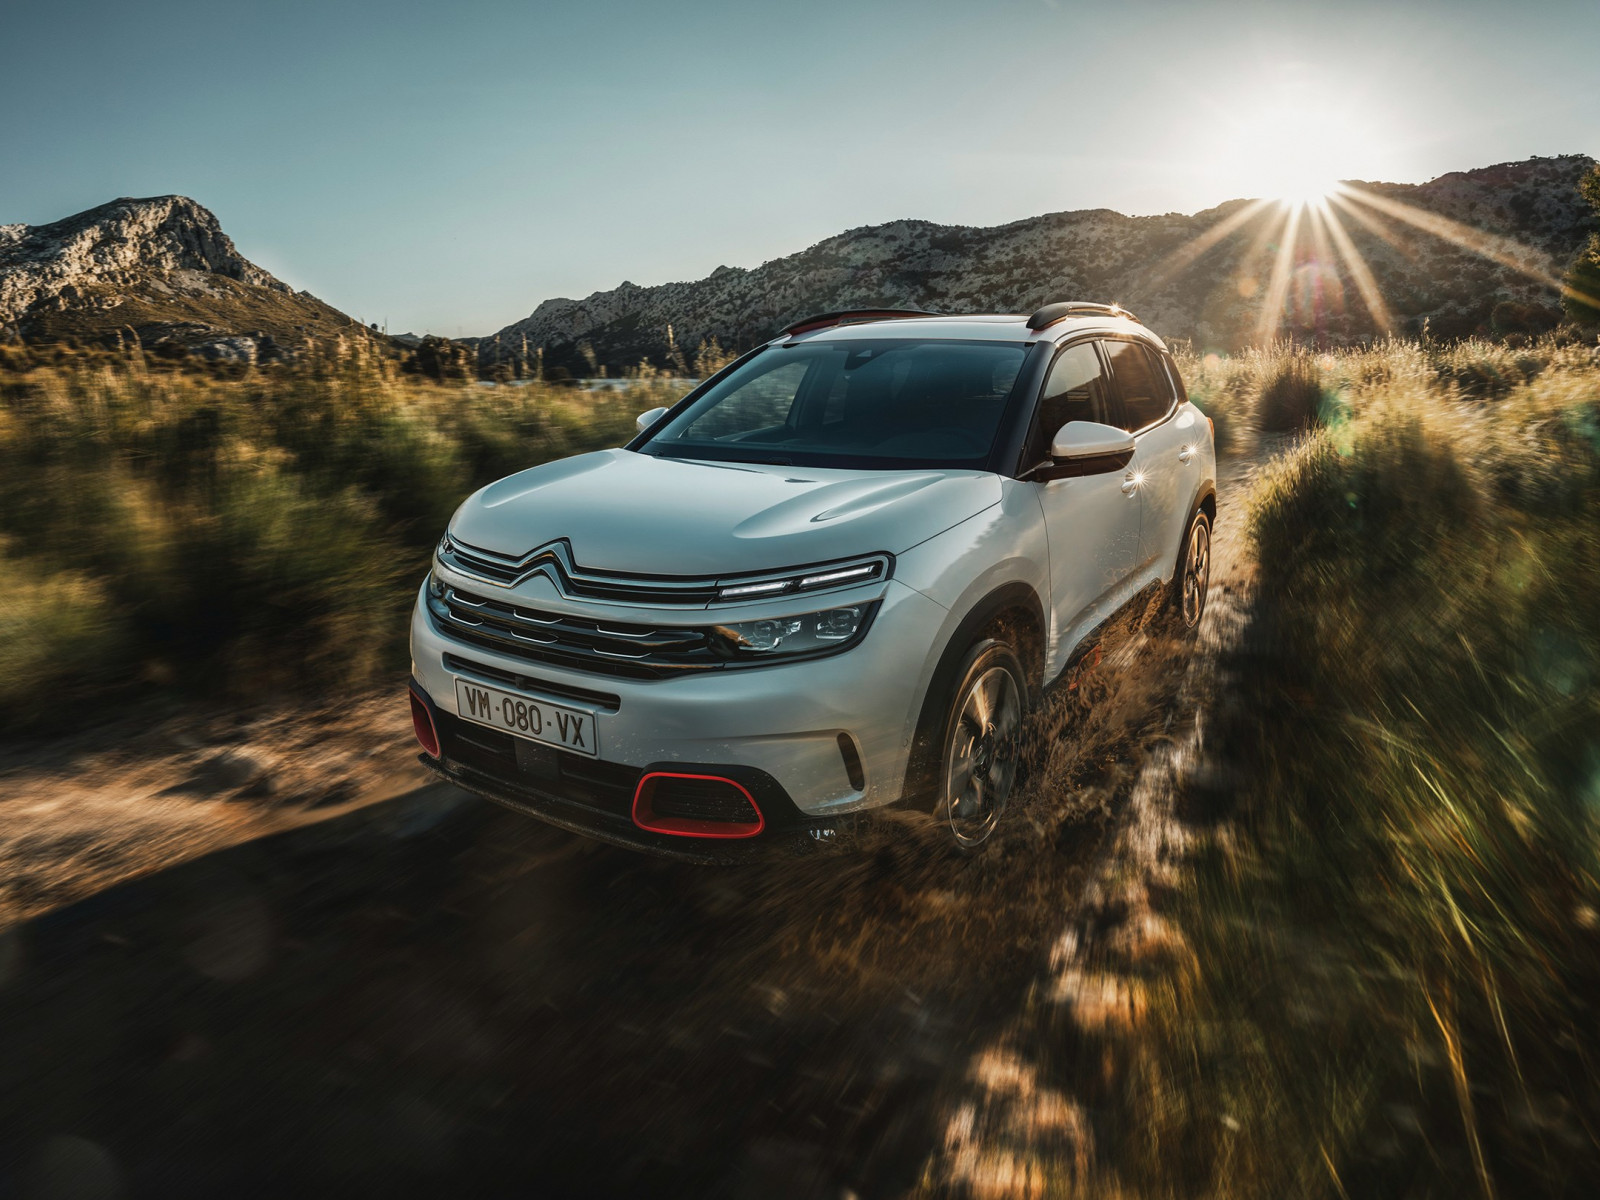 Citroen C5 Aircross wallpaper 1600x1200